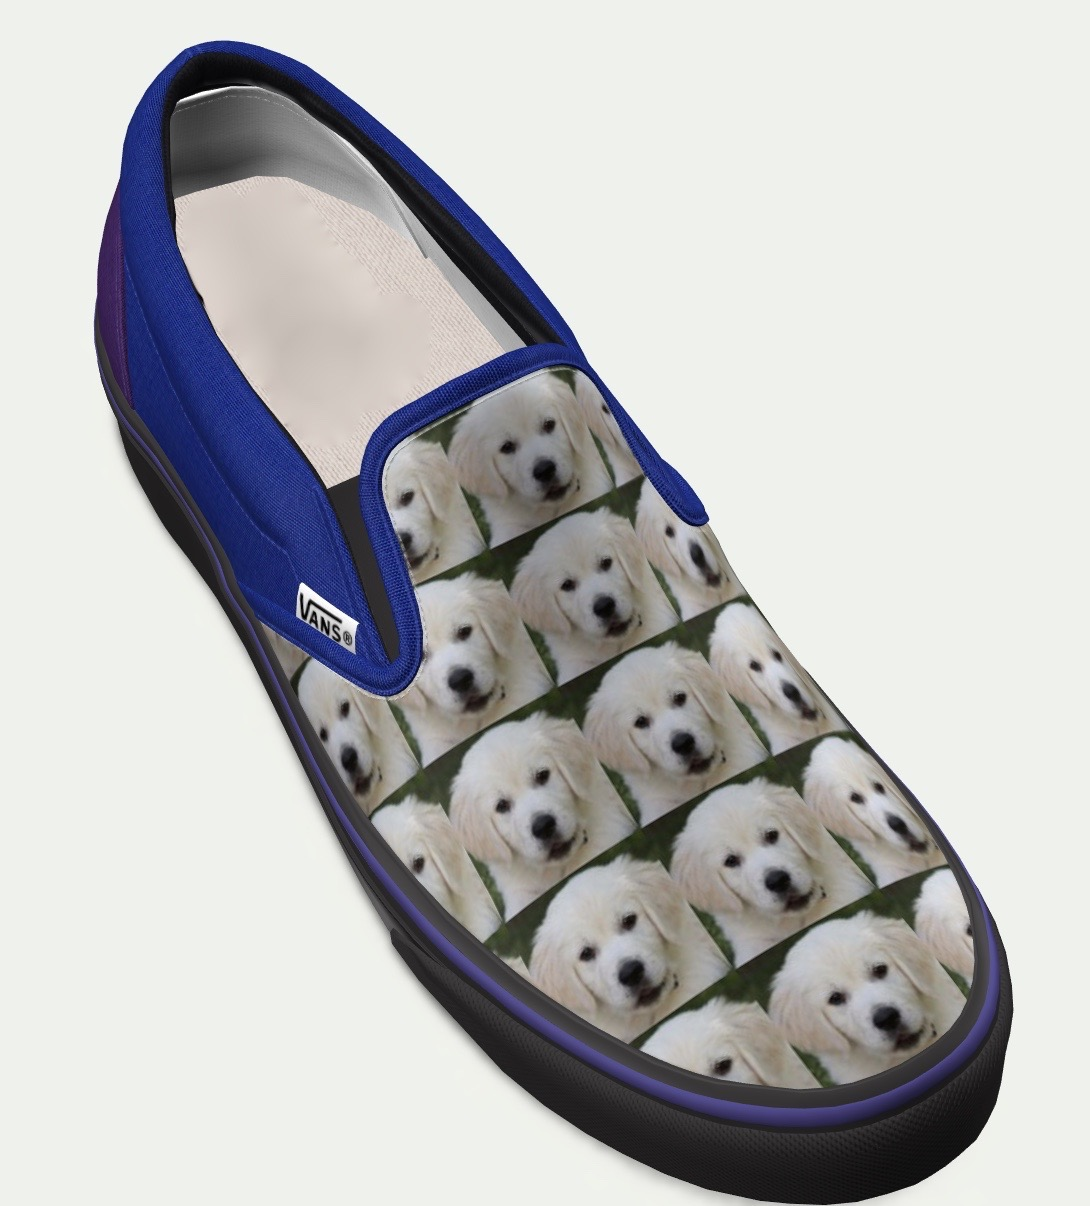 Baxter Pupp Tile Shoes | $250.